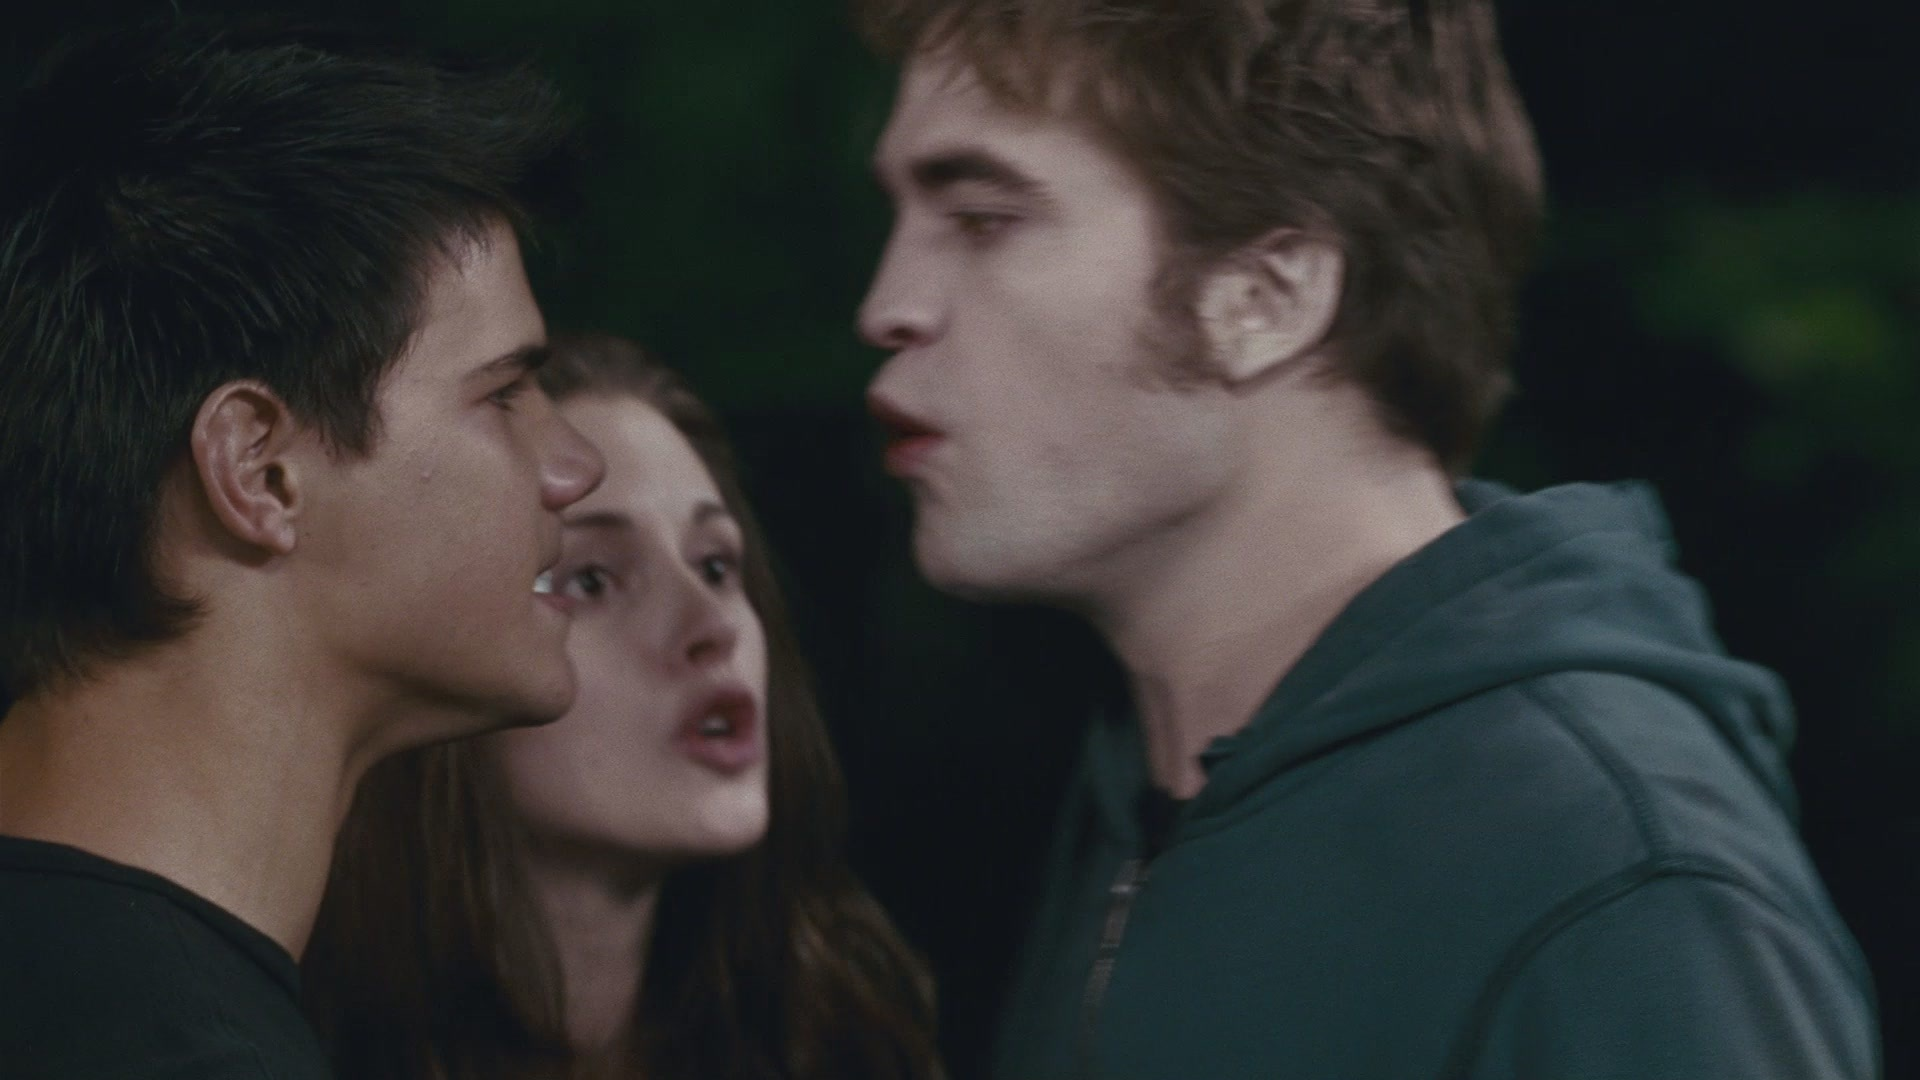 Edward and bella sex scence eclipse